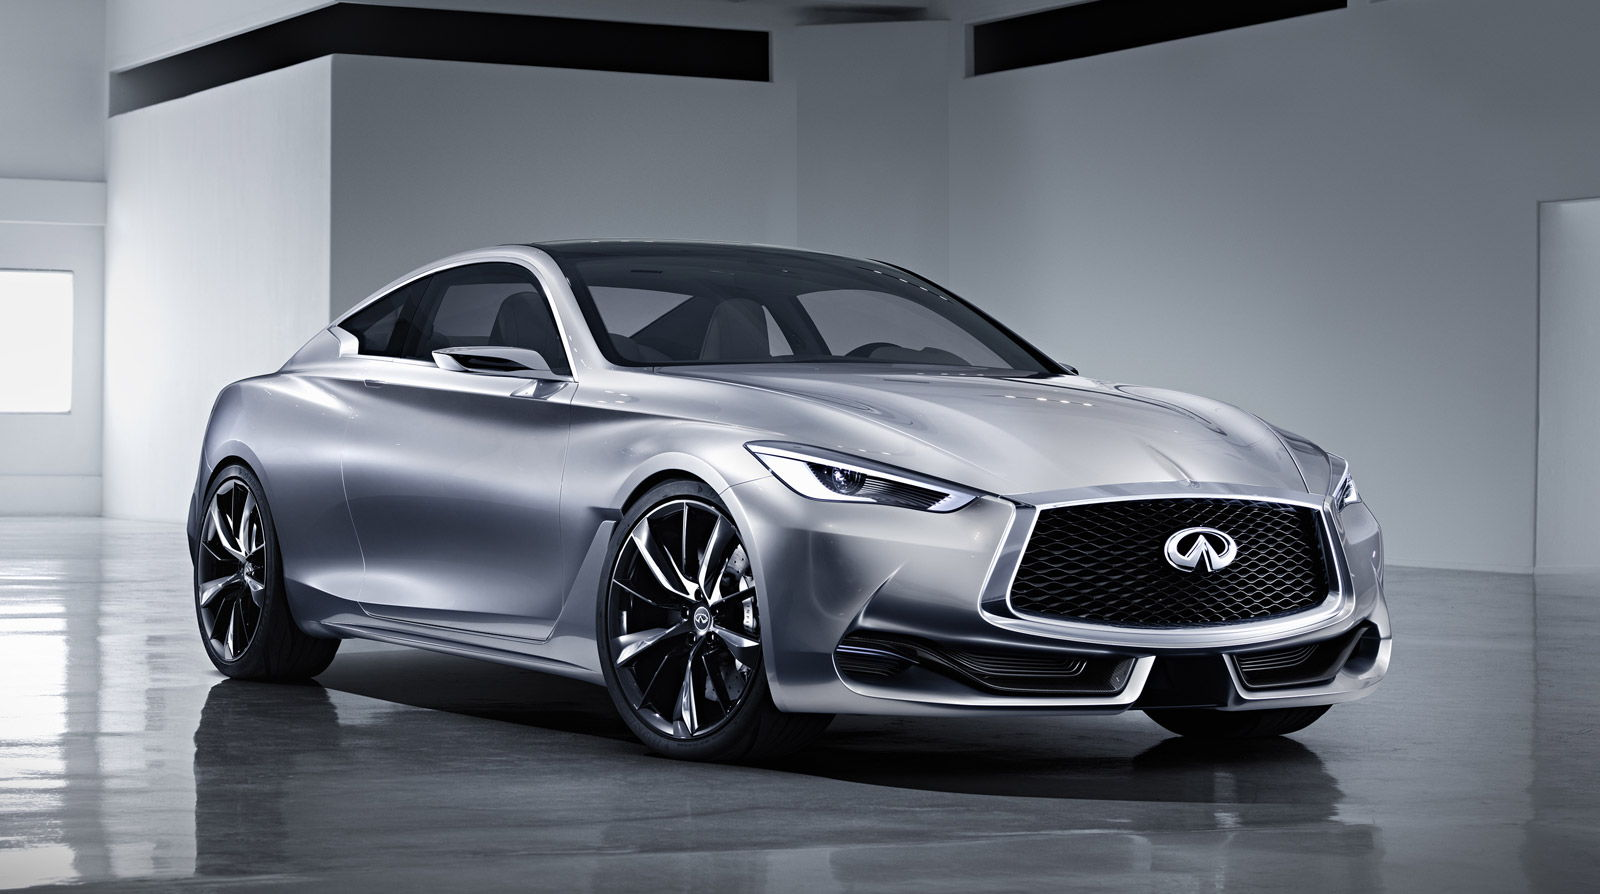 New images of the 2016 q60 coupe concept